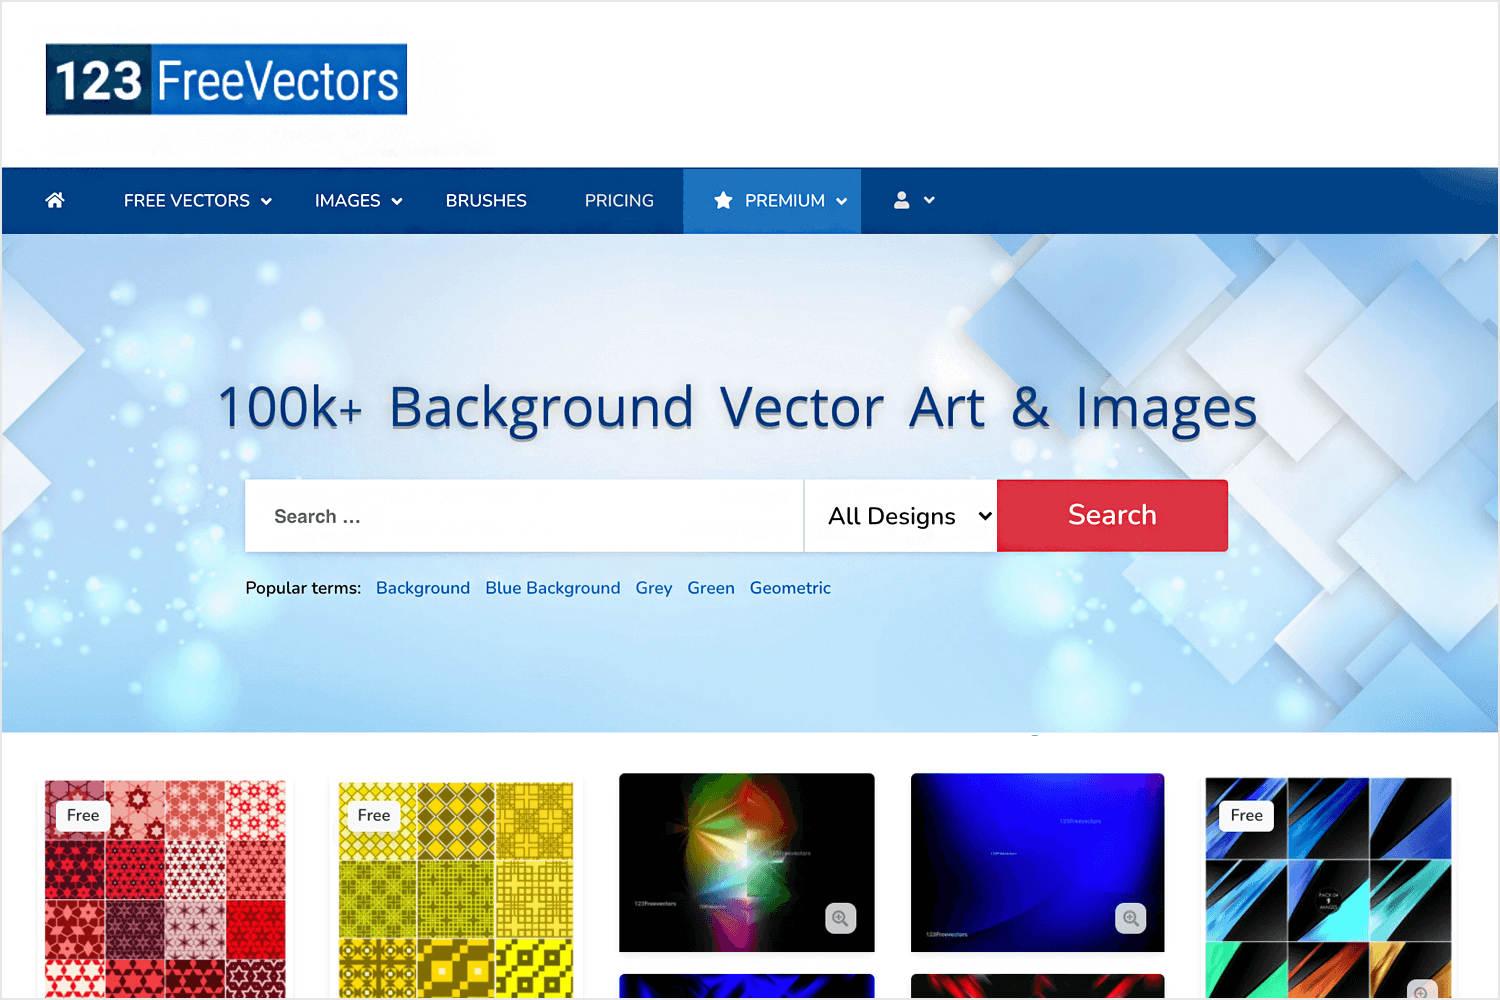 Free vector images - 123FreeVectors homepage